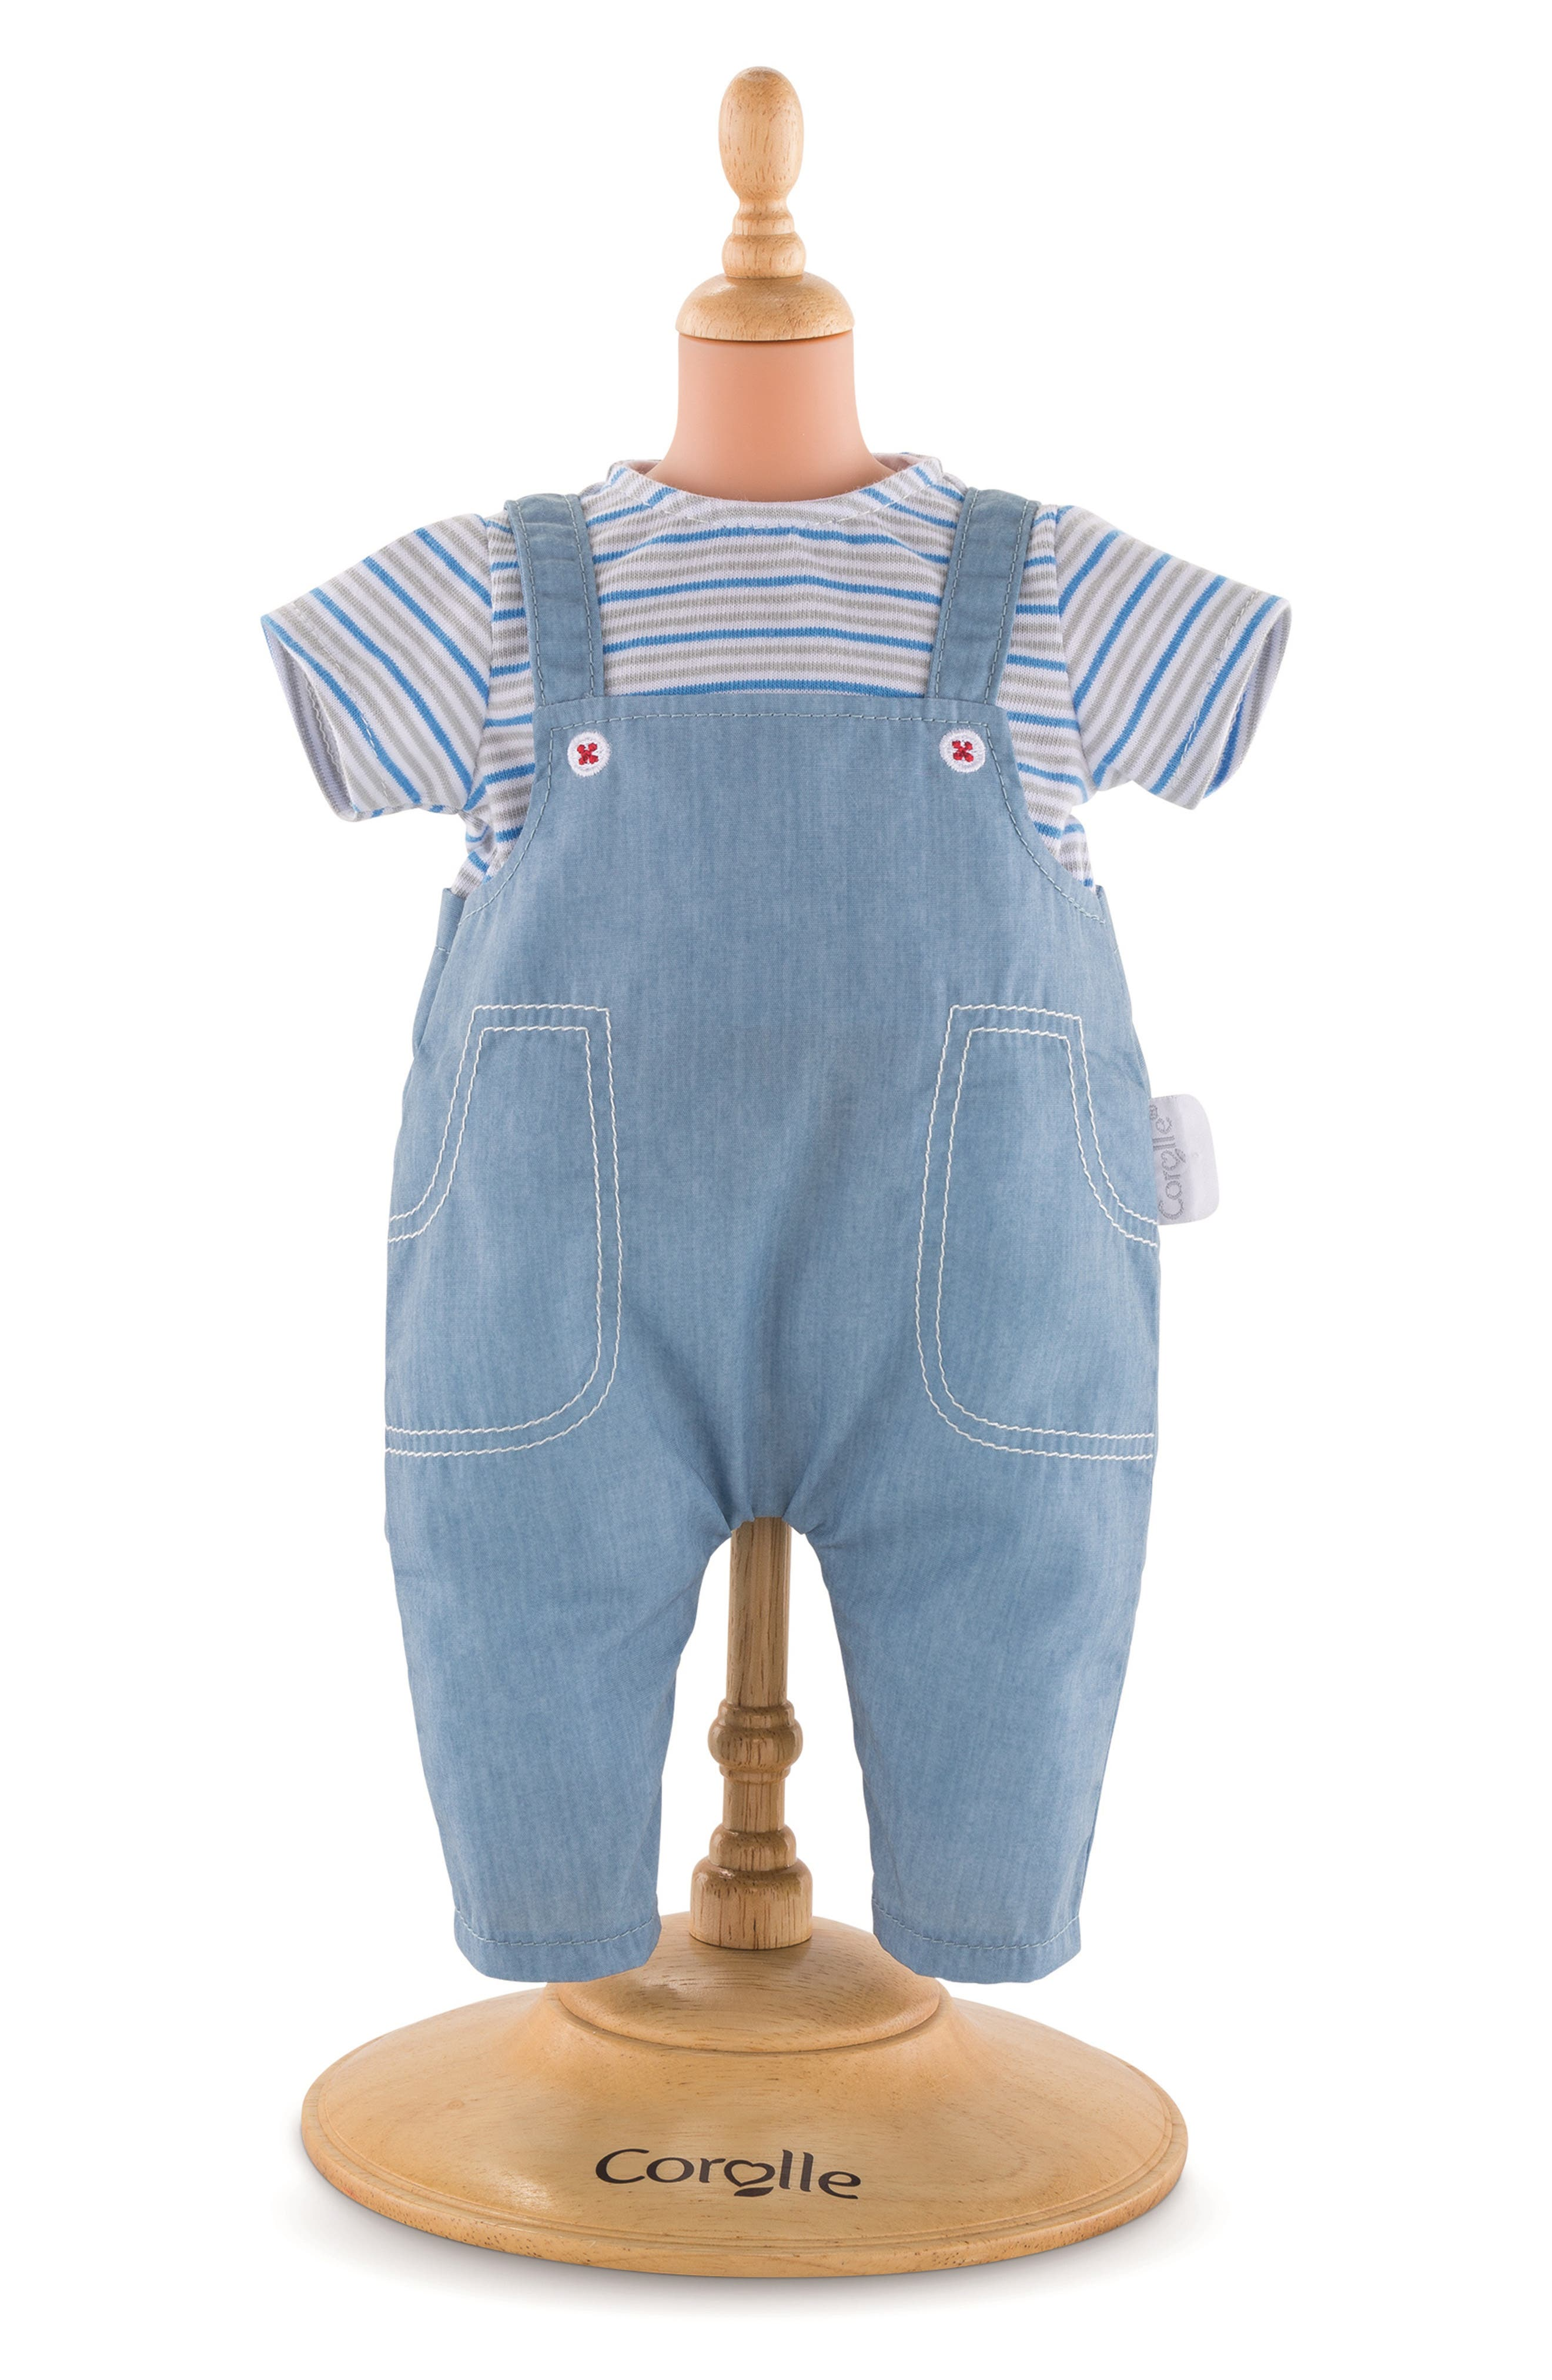 Toddler Girls Corolle Doll TShirt  Overalls Set